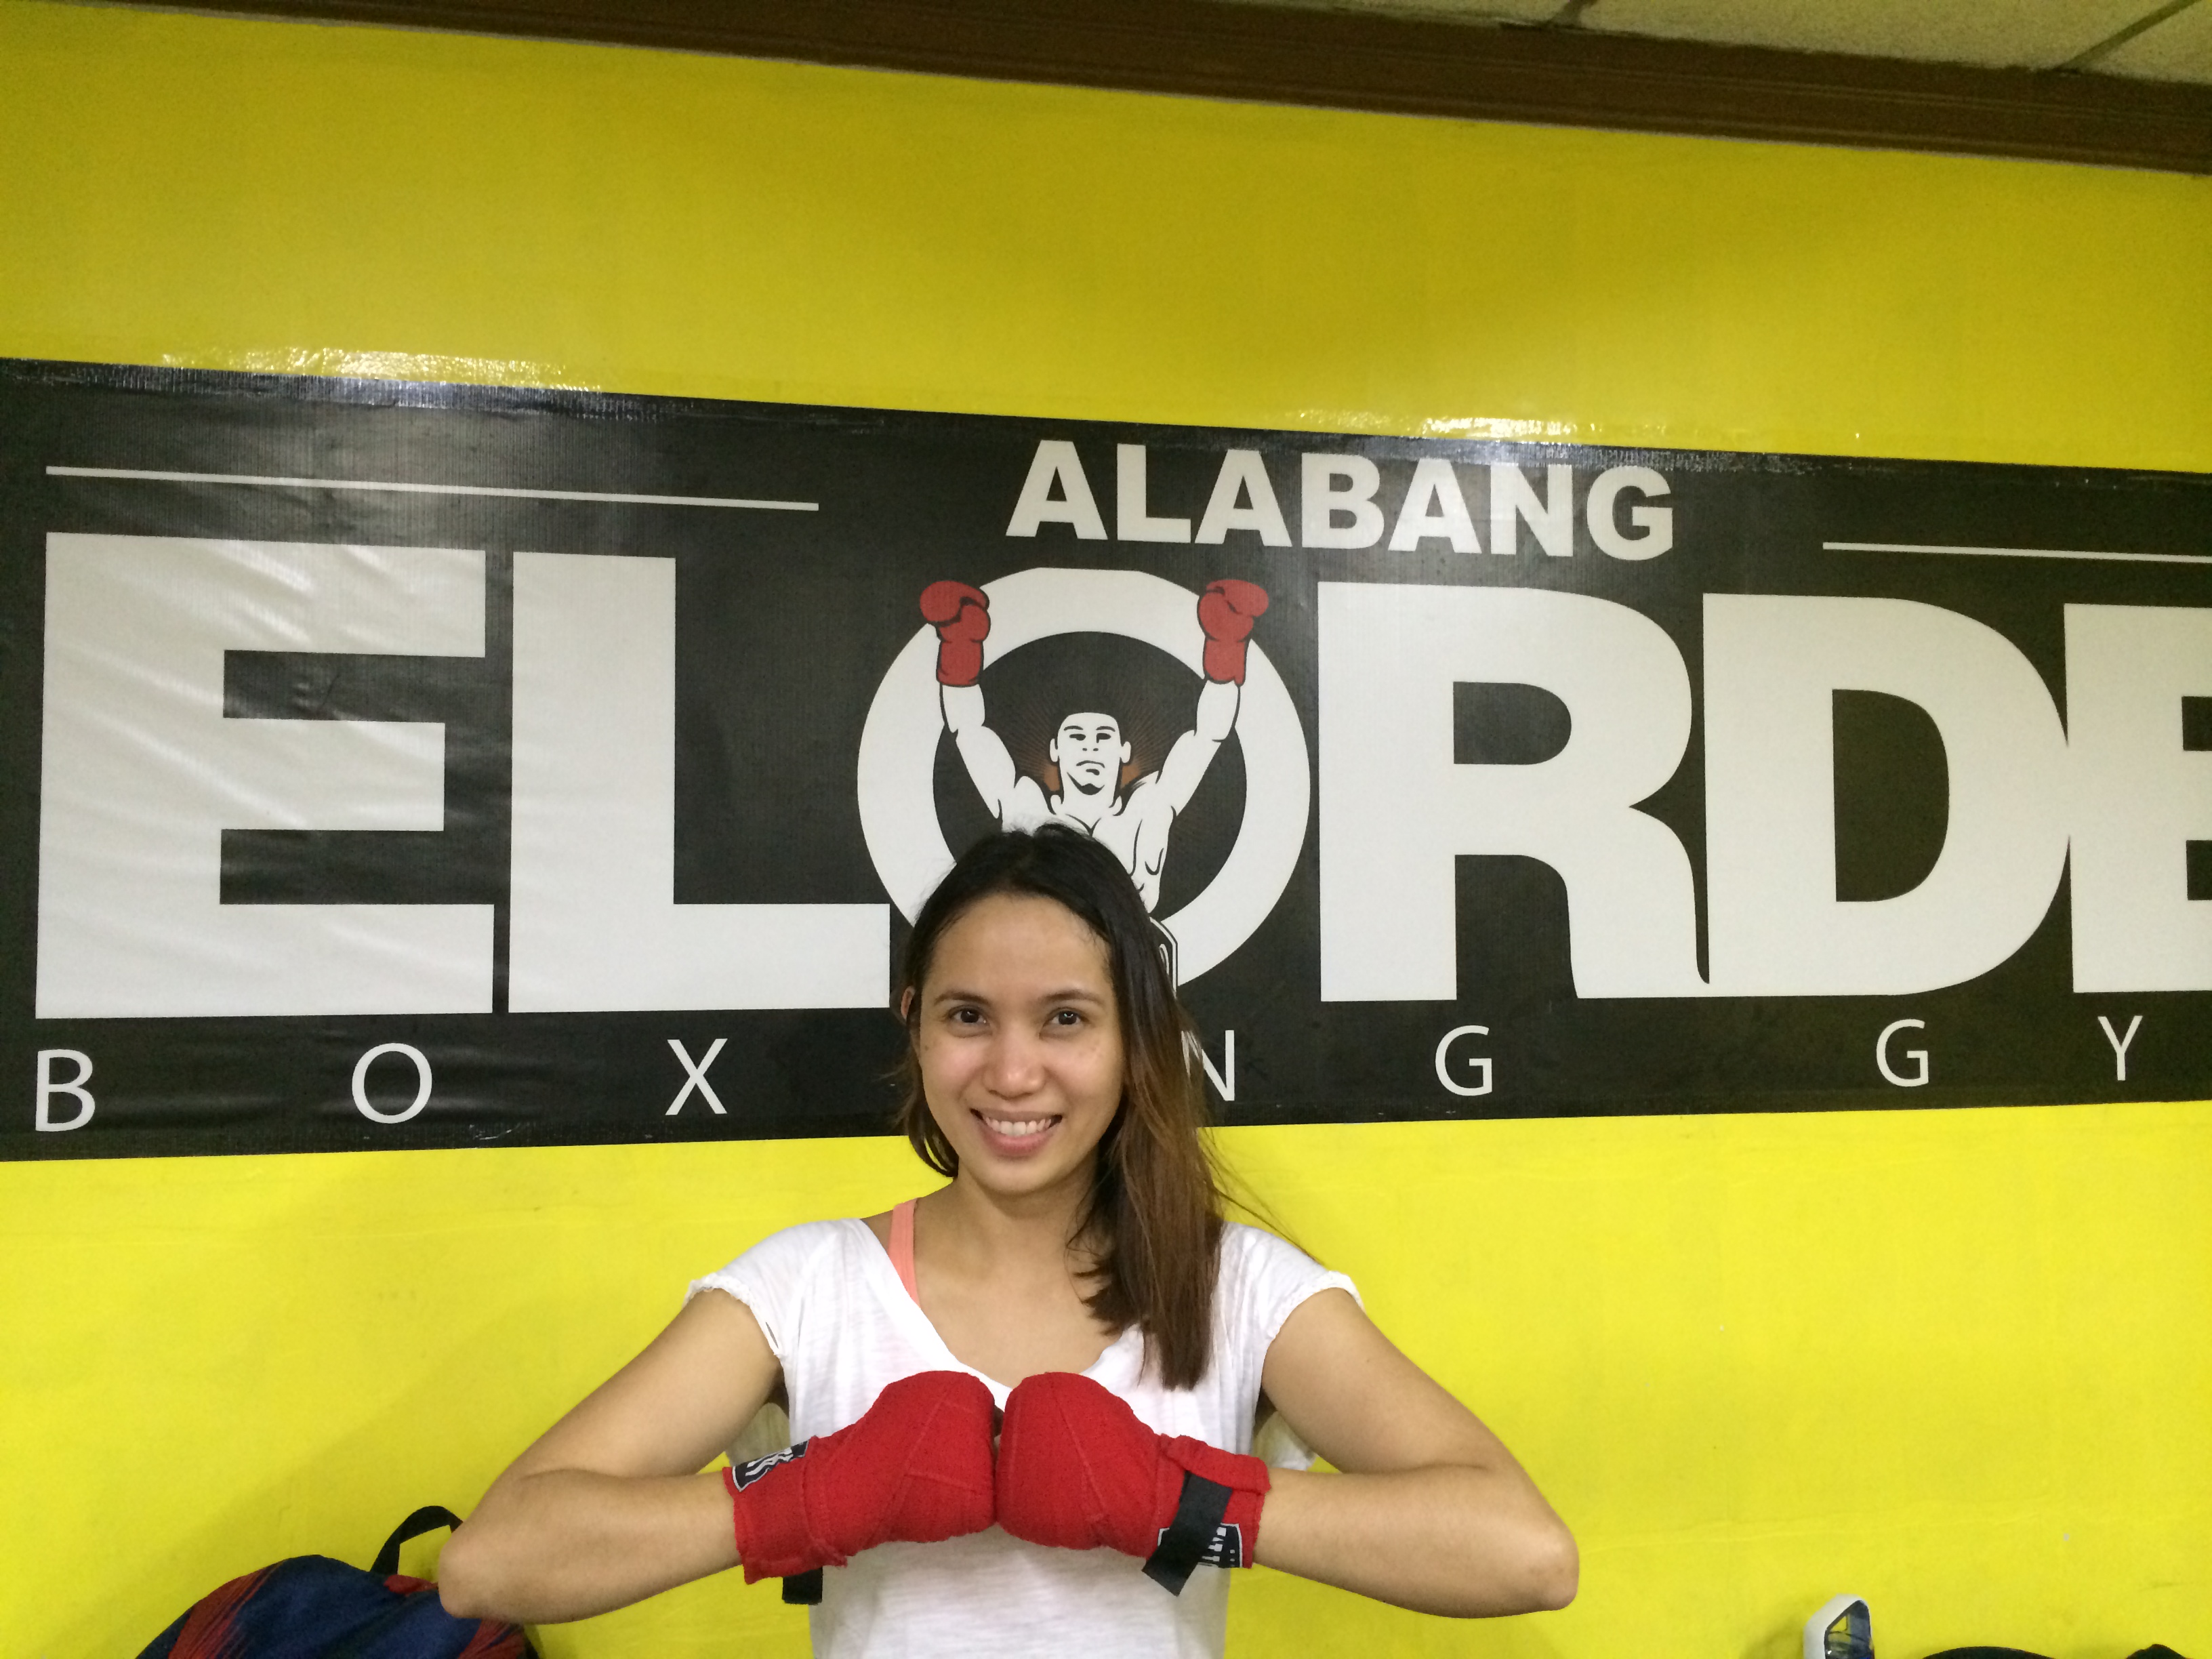 Boxing at Elorde Gym | Our Journey, His Glory